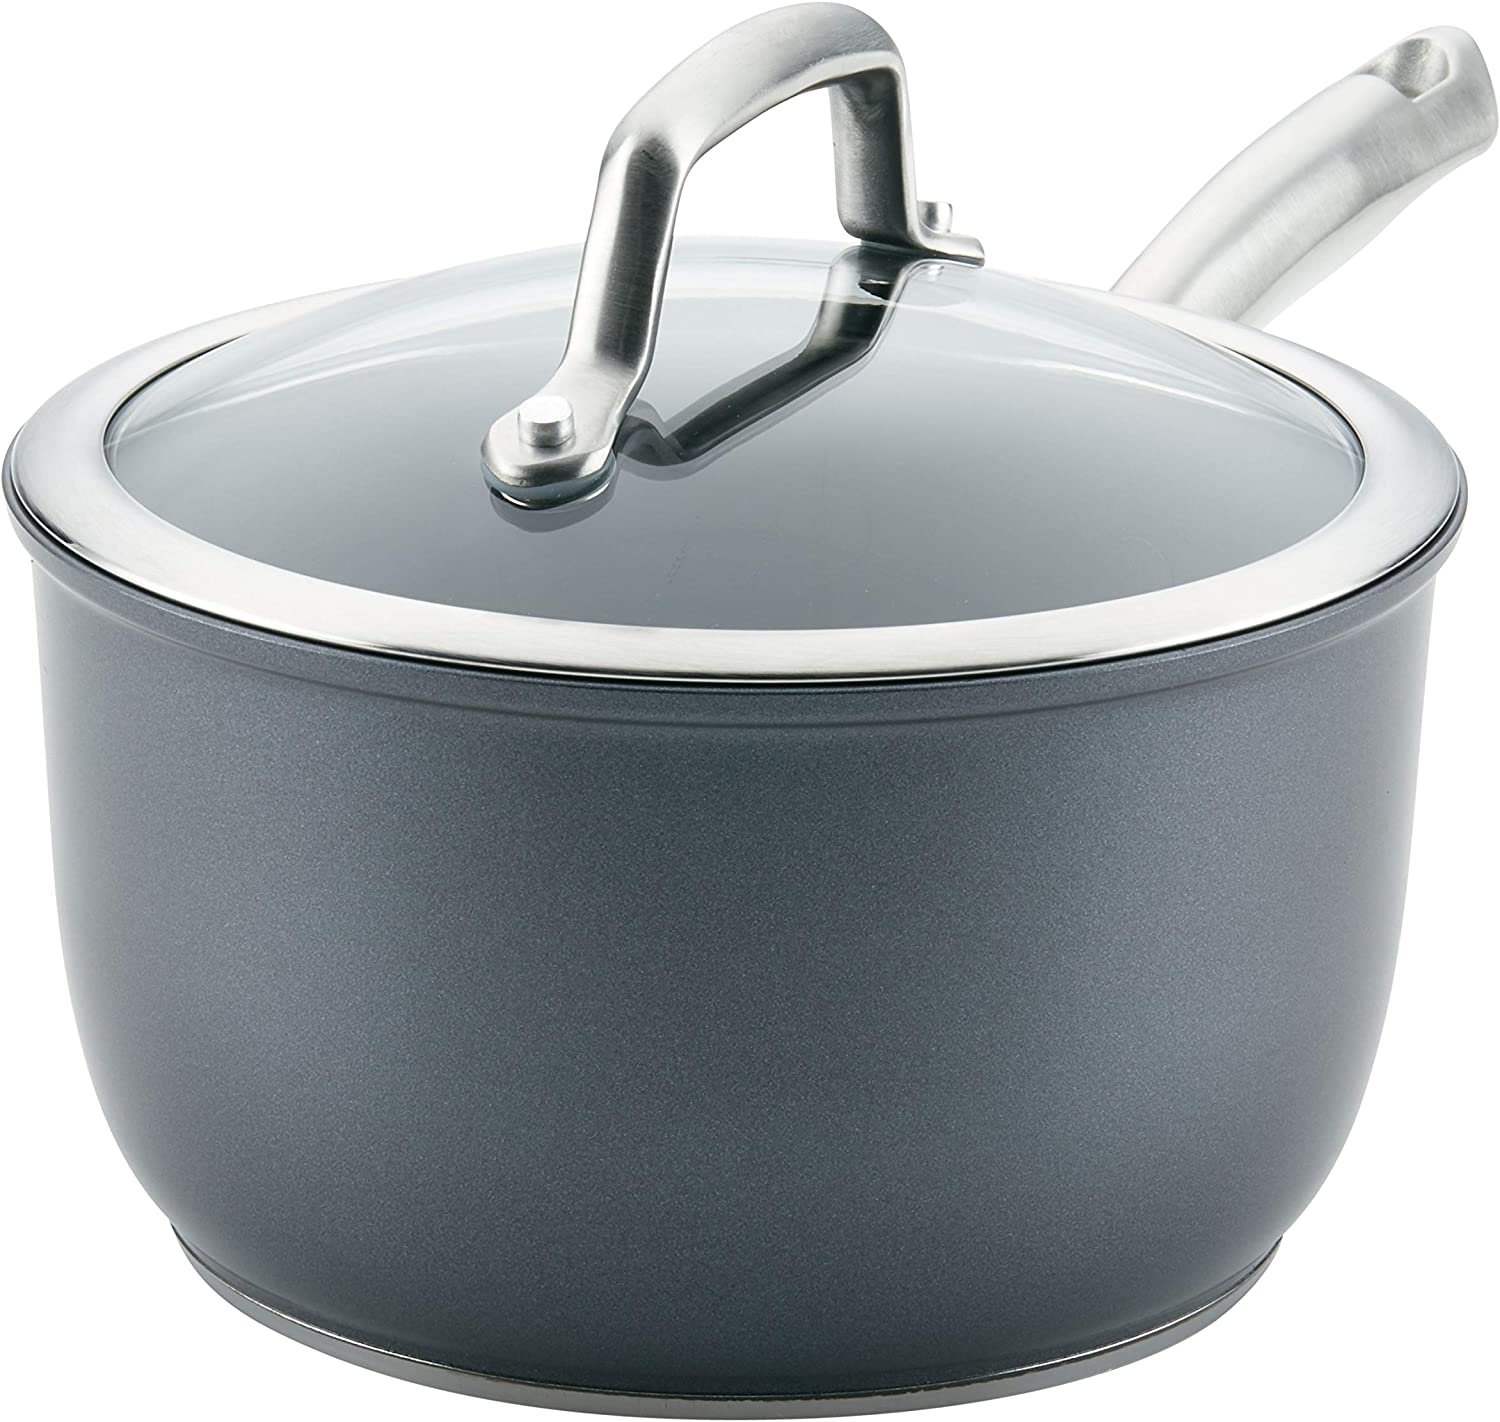 Anolon Accolade Forged Hard-Anodized Precision Forge Saucepan with Lid, 2.5 Quart, Moonstone